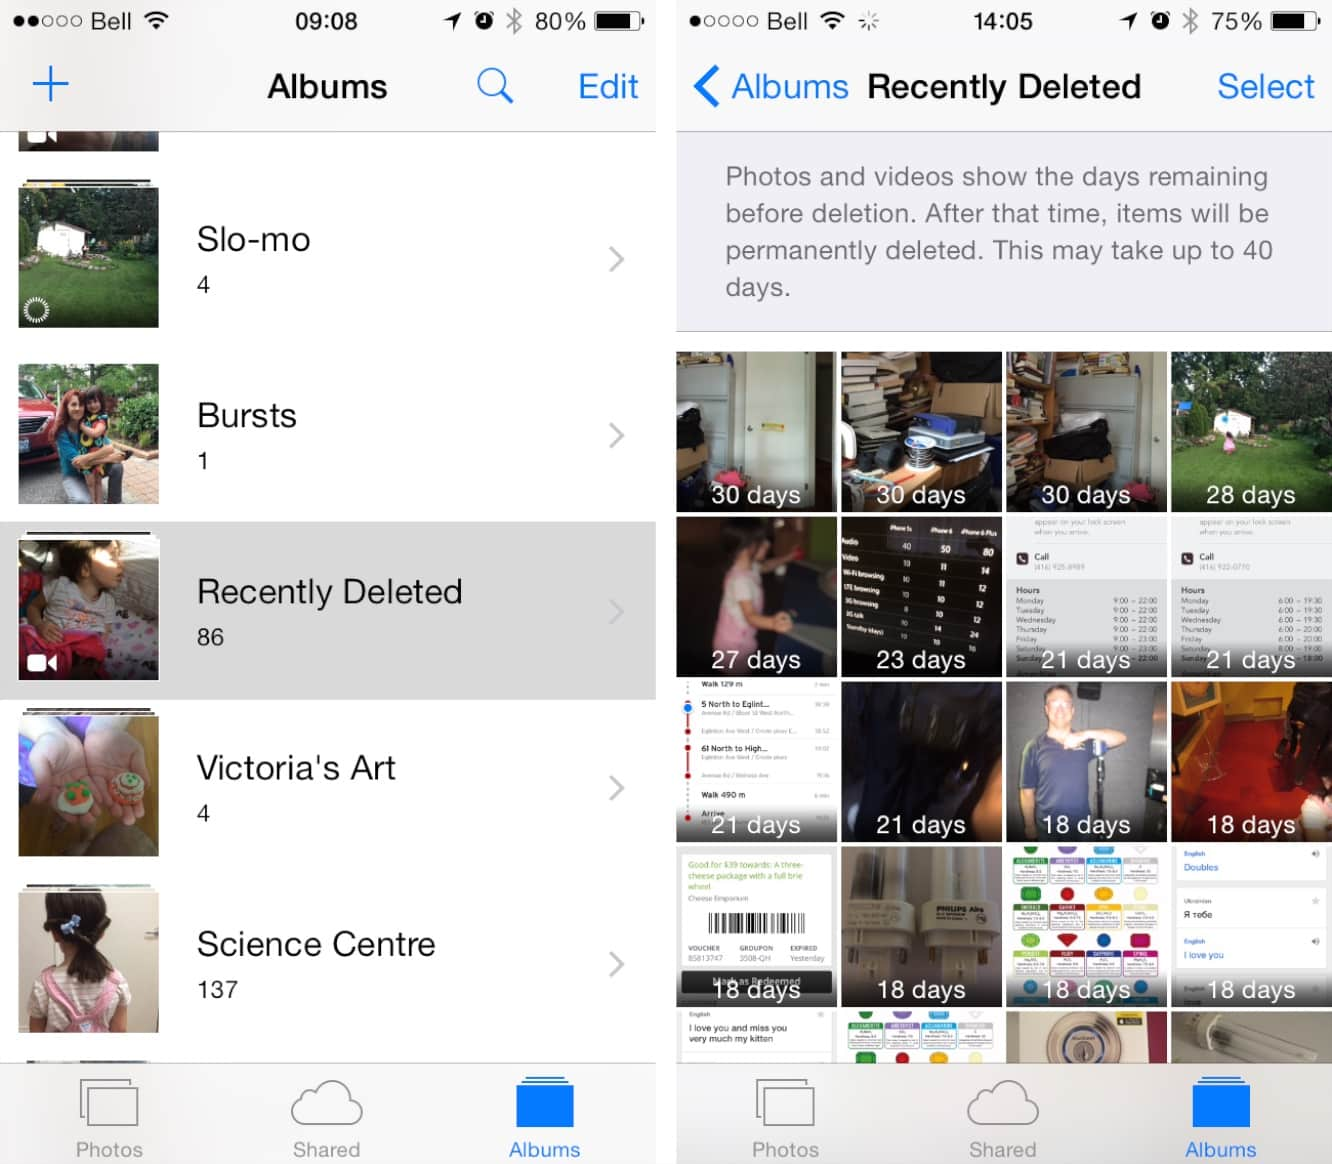 Restoring Deleted Photos and Videos in iOS 8